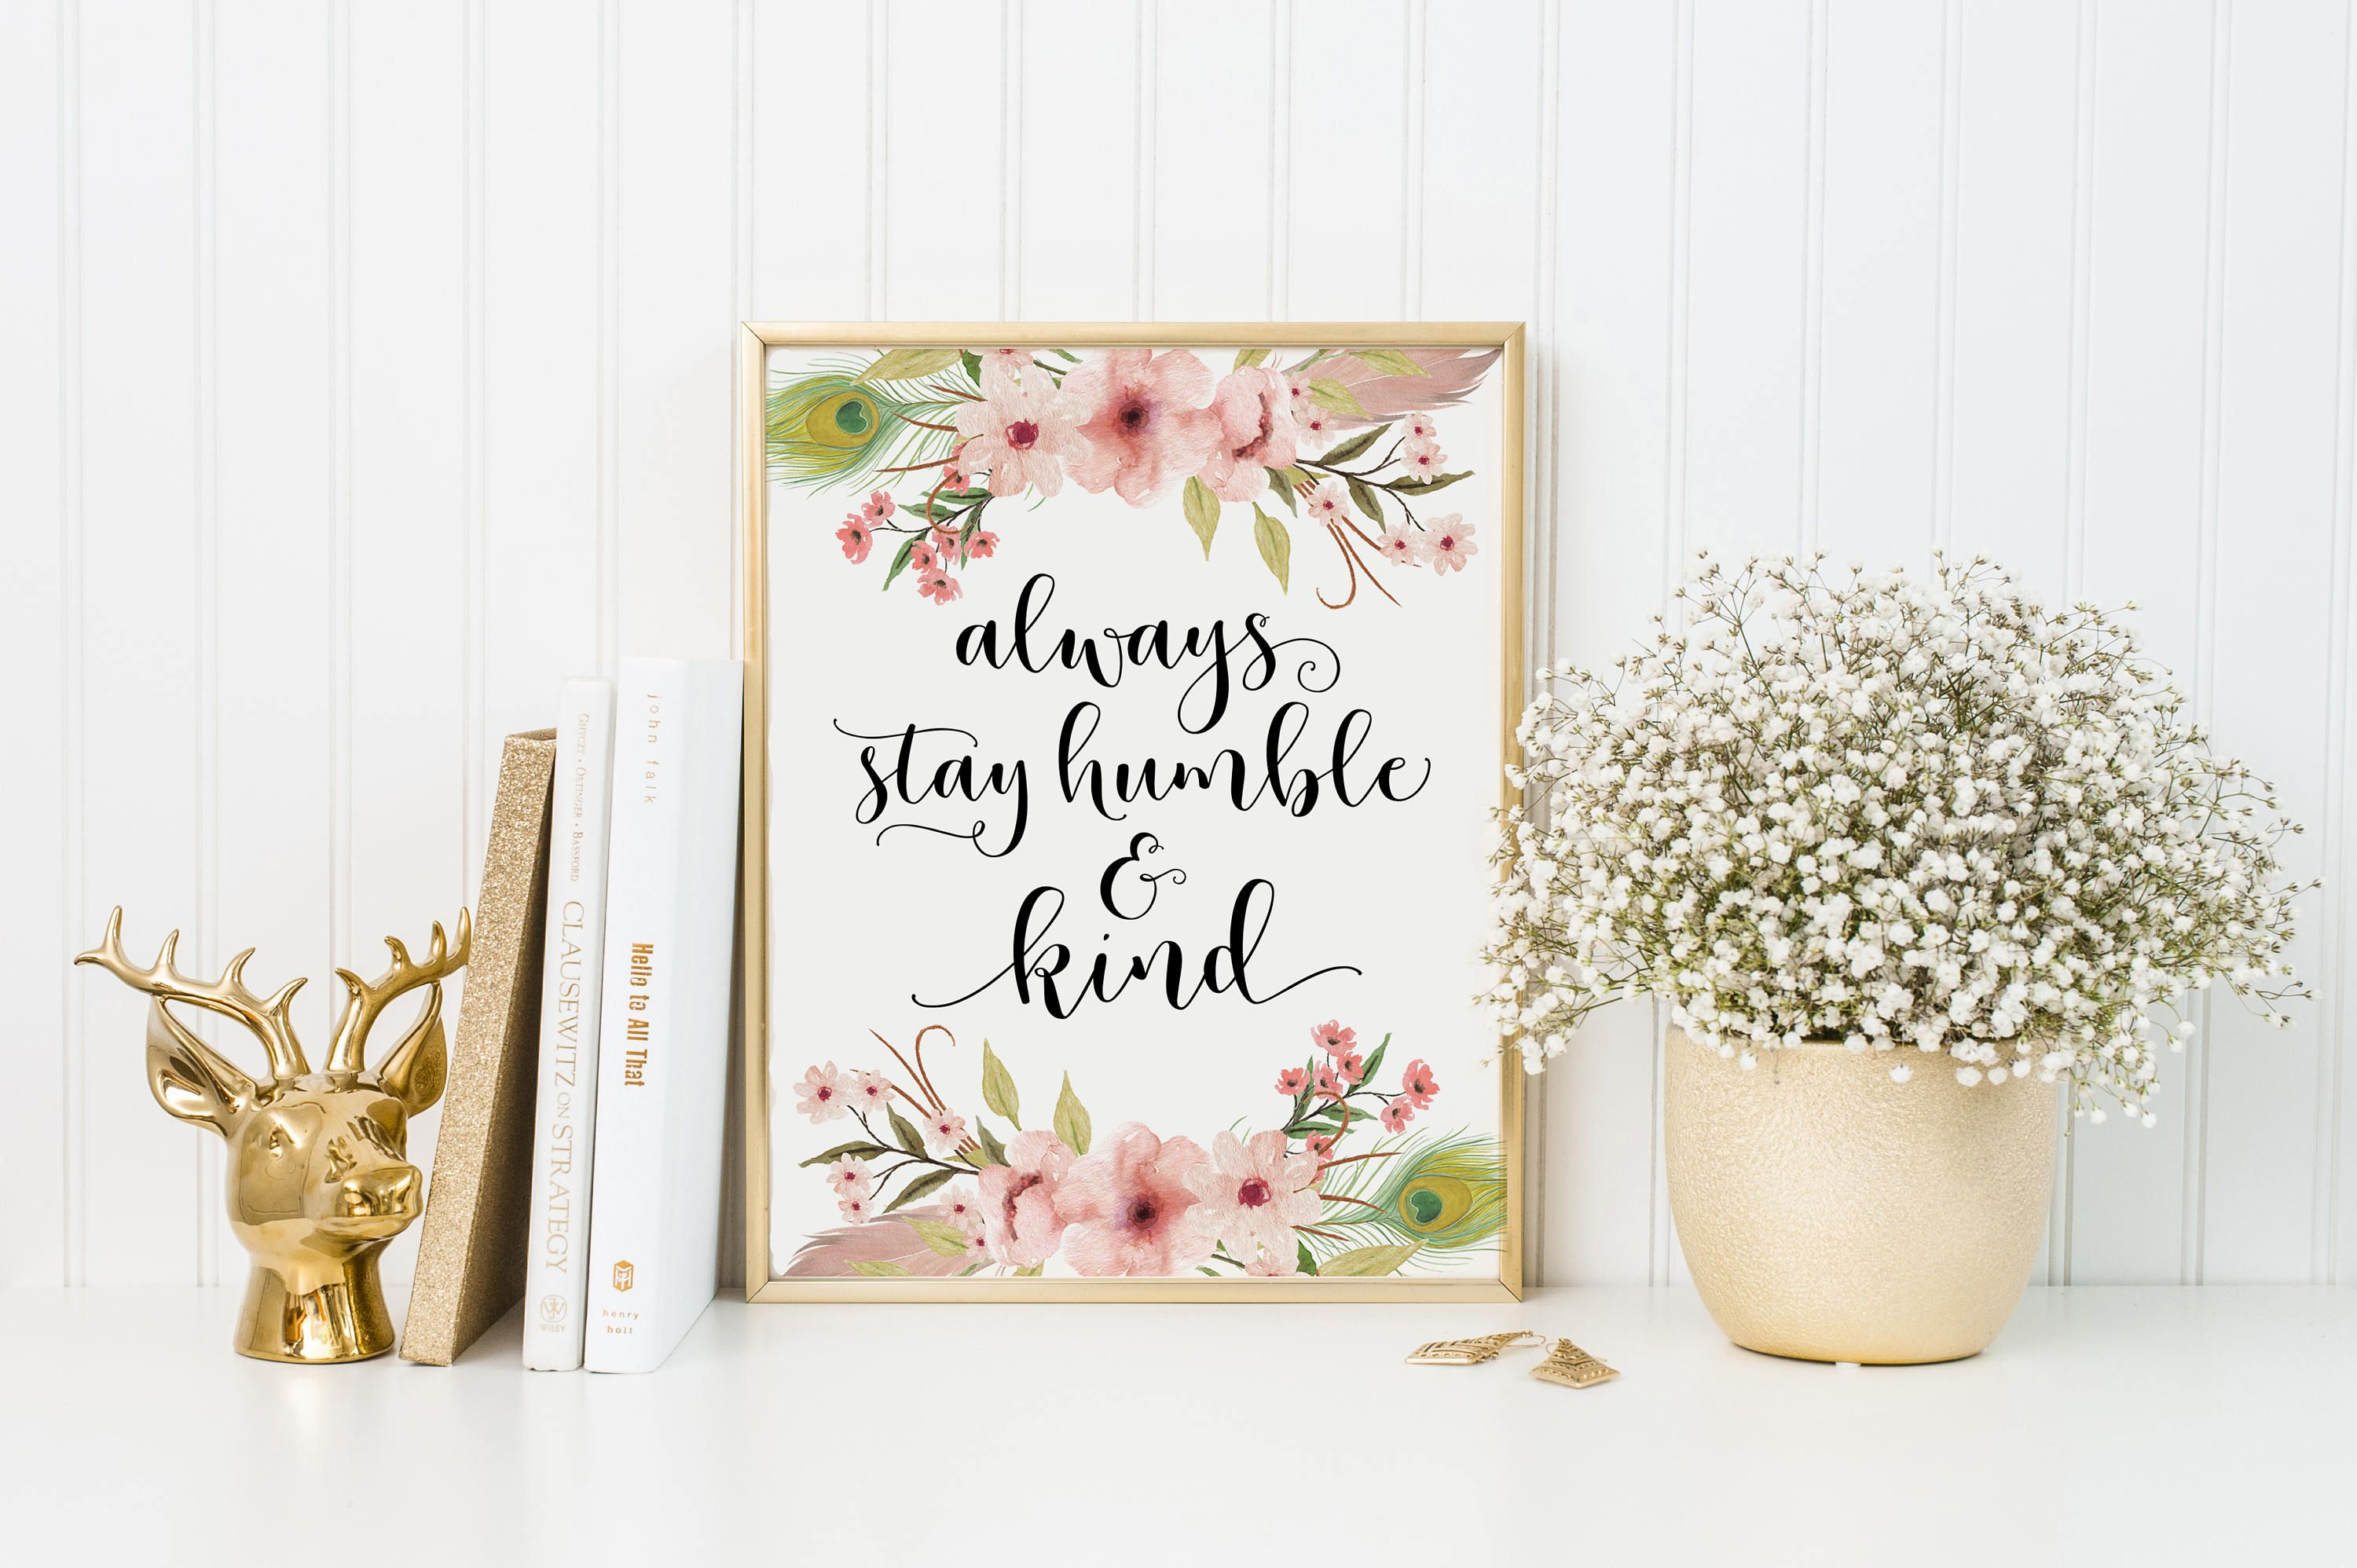 Always Stay Humble And Kind Print Humble And Kind Etsy Gold Foil Print Christian Wall Art Foil Print